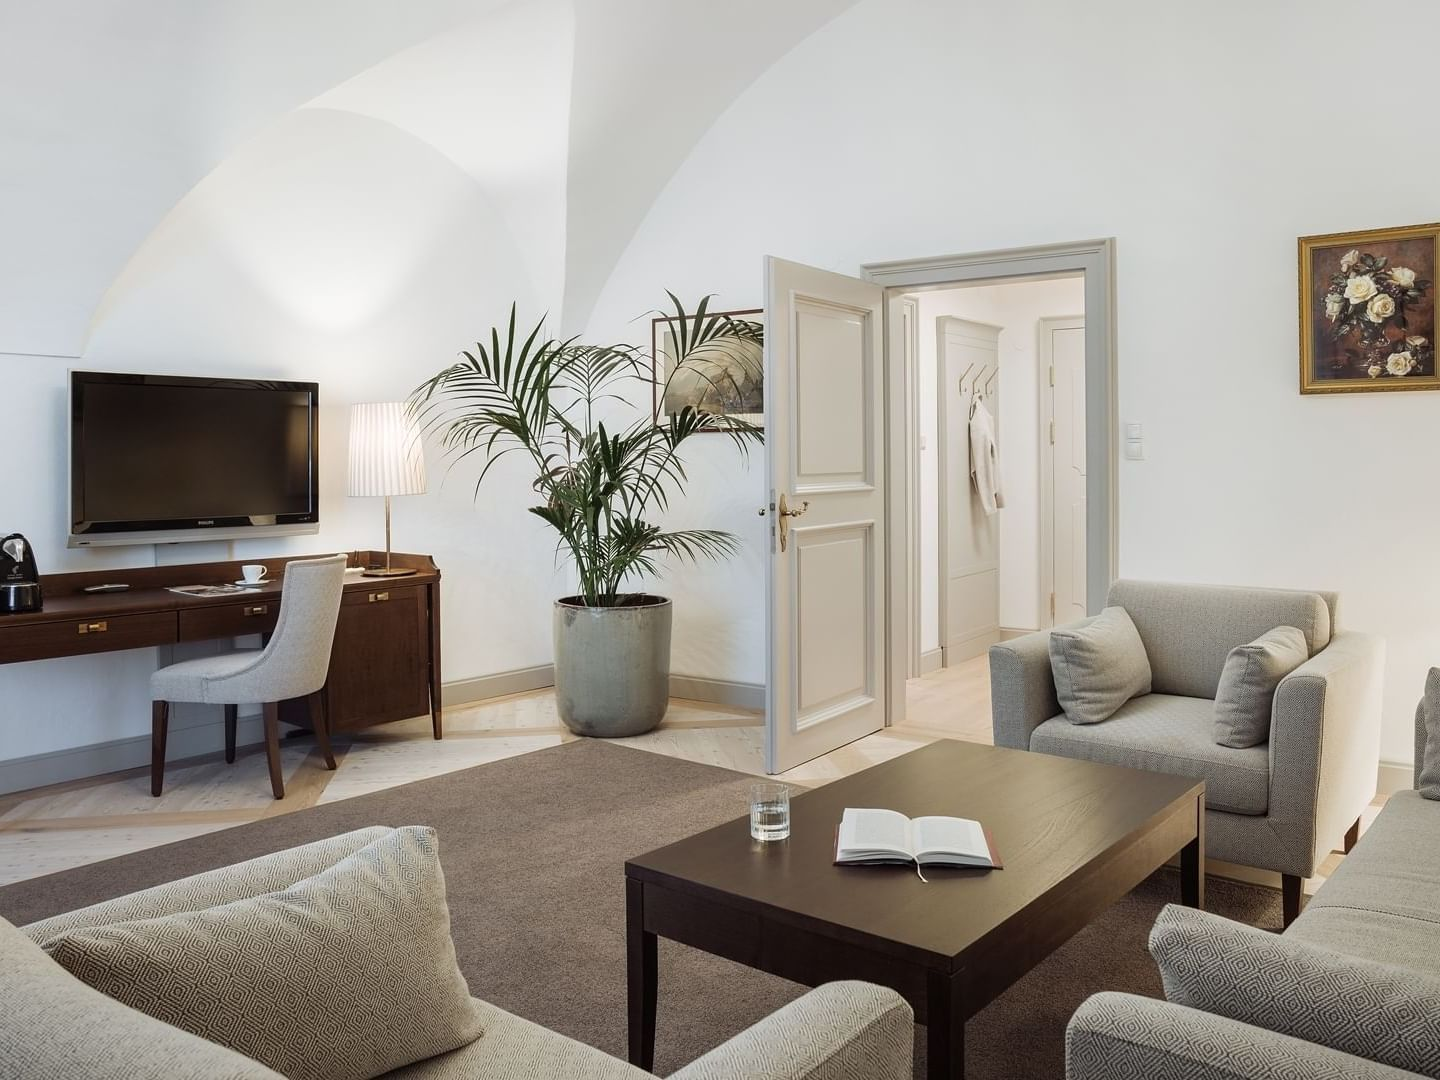 Traditional Suite at Schloss Pichlarn Hotel in Austria